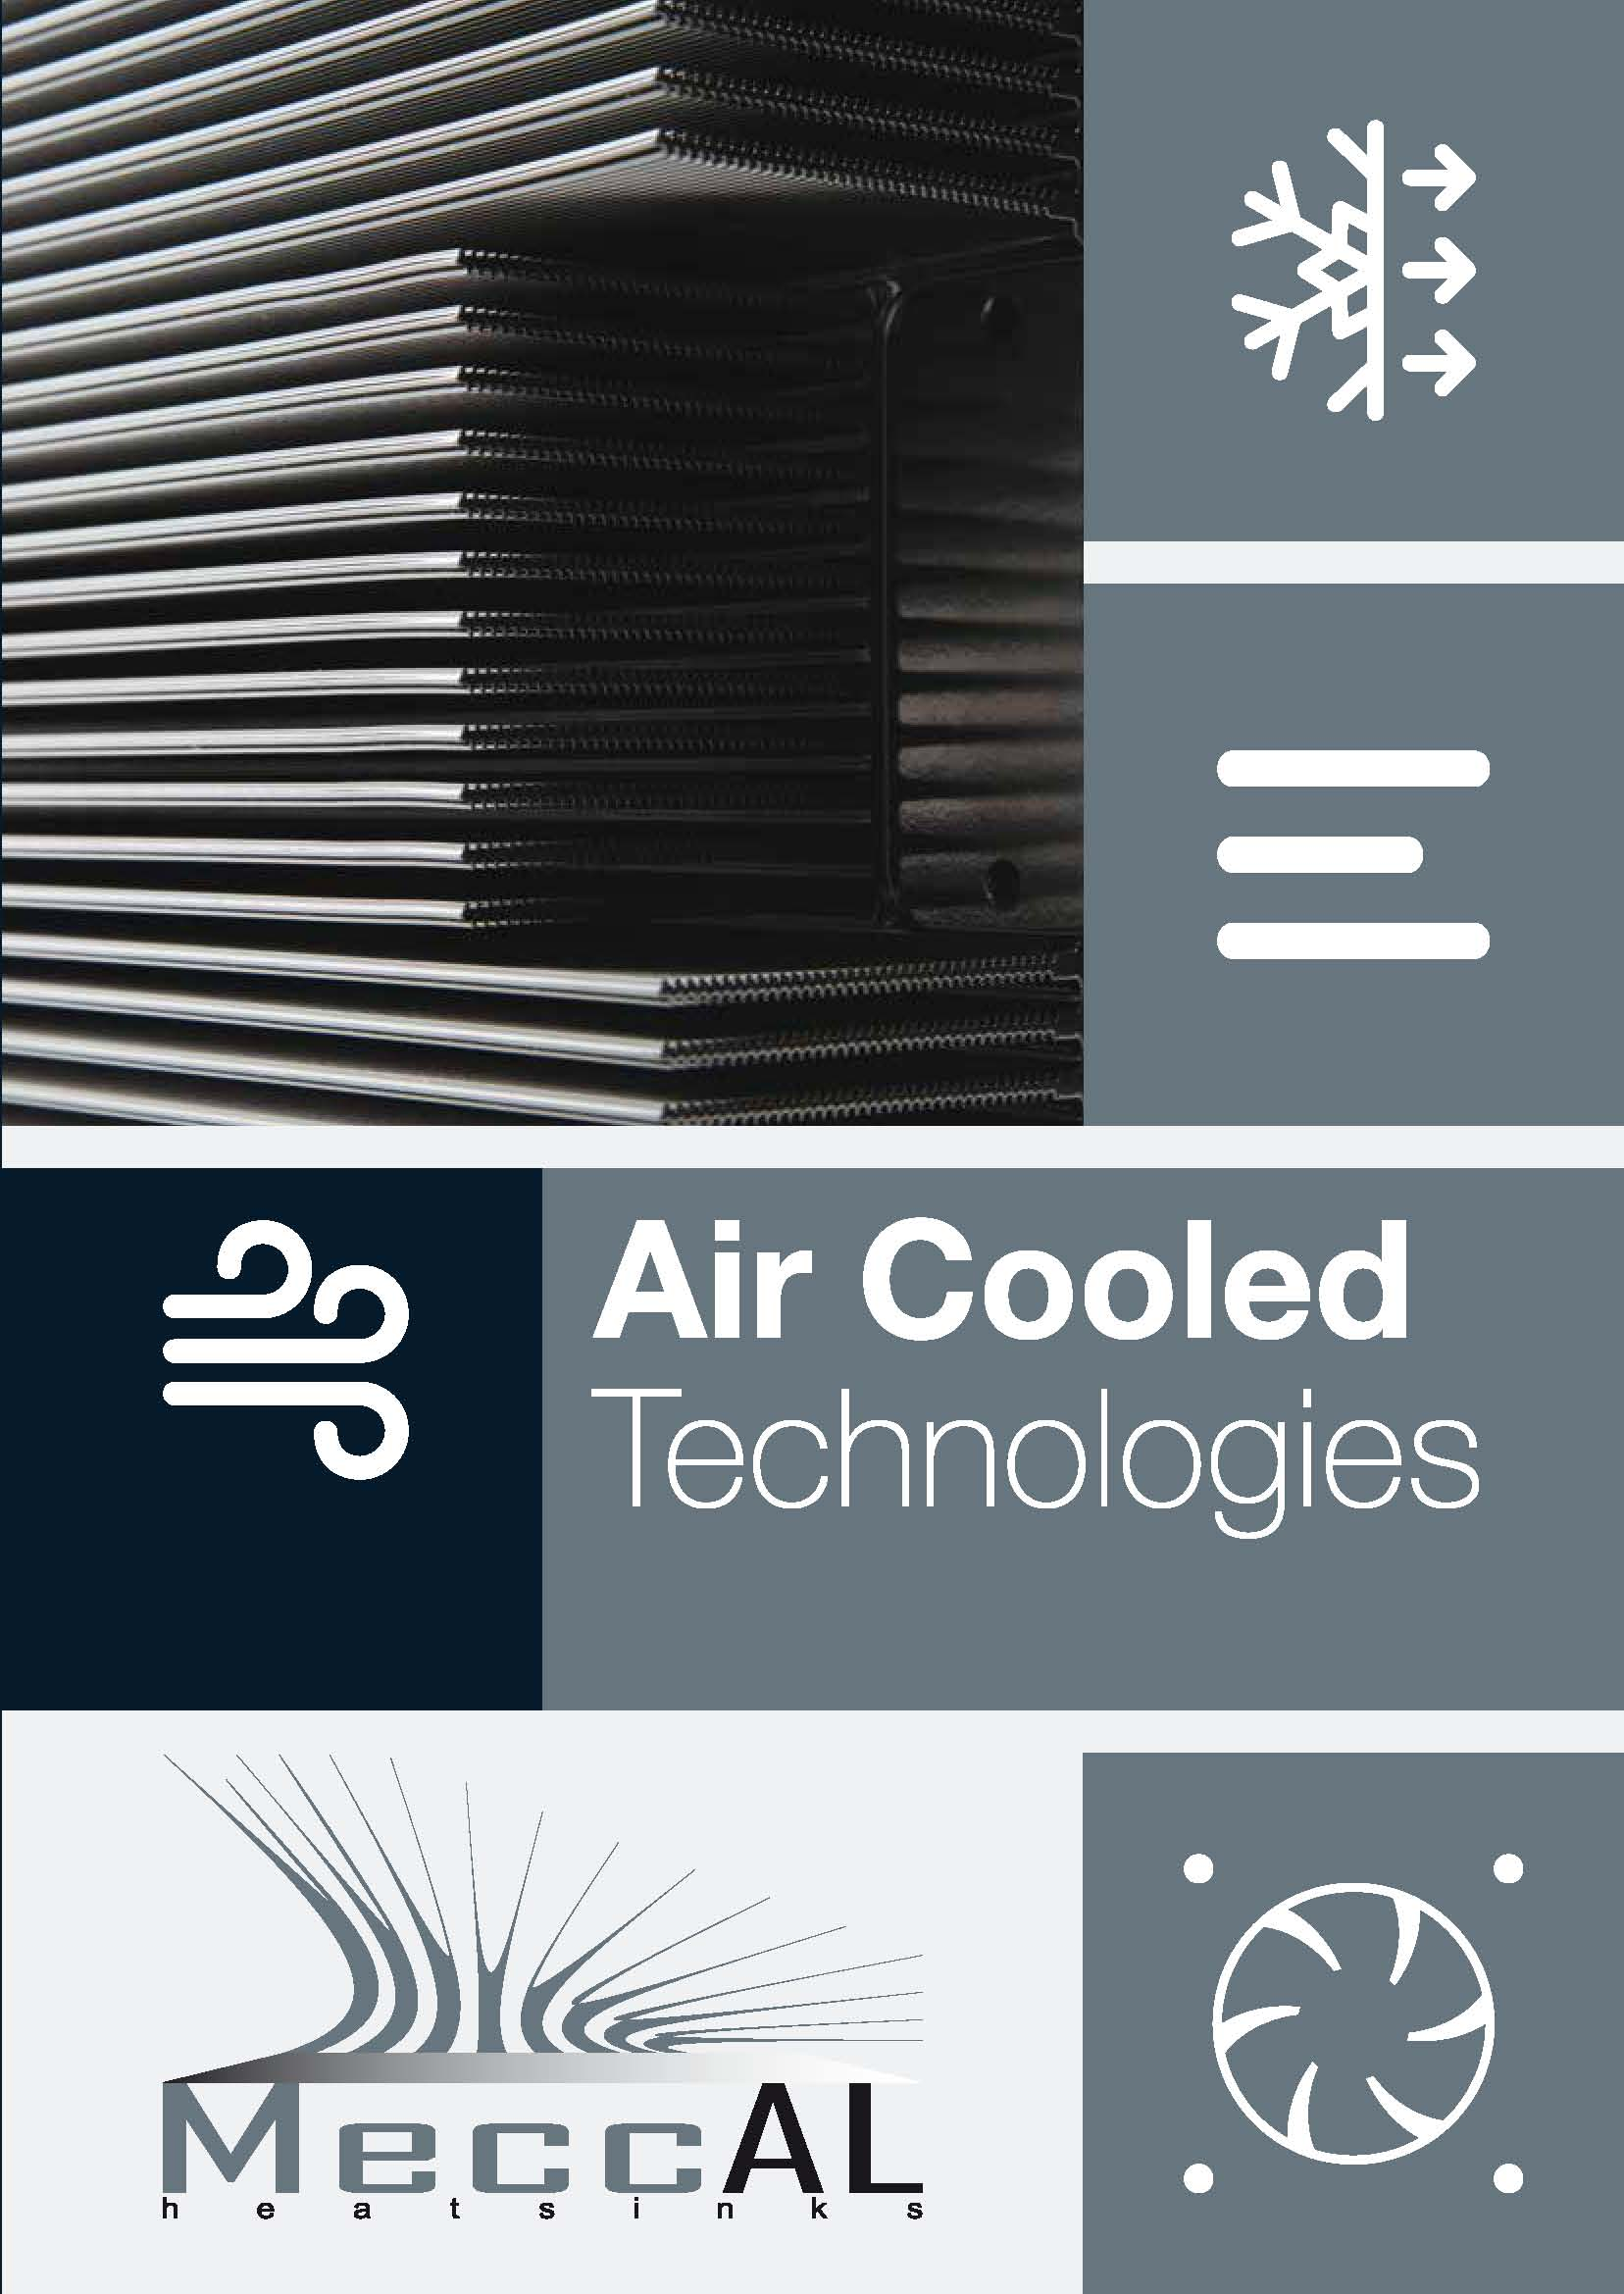 MeccAl - Air Cooled Technologies